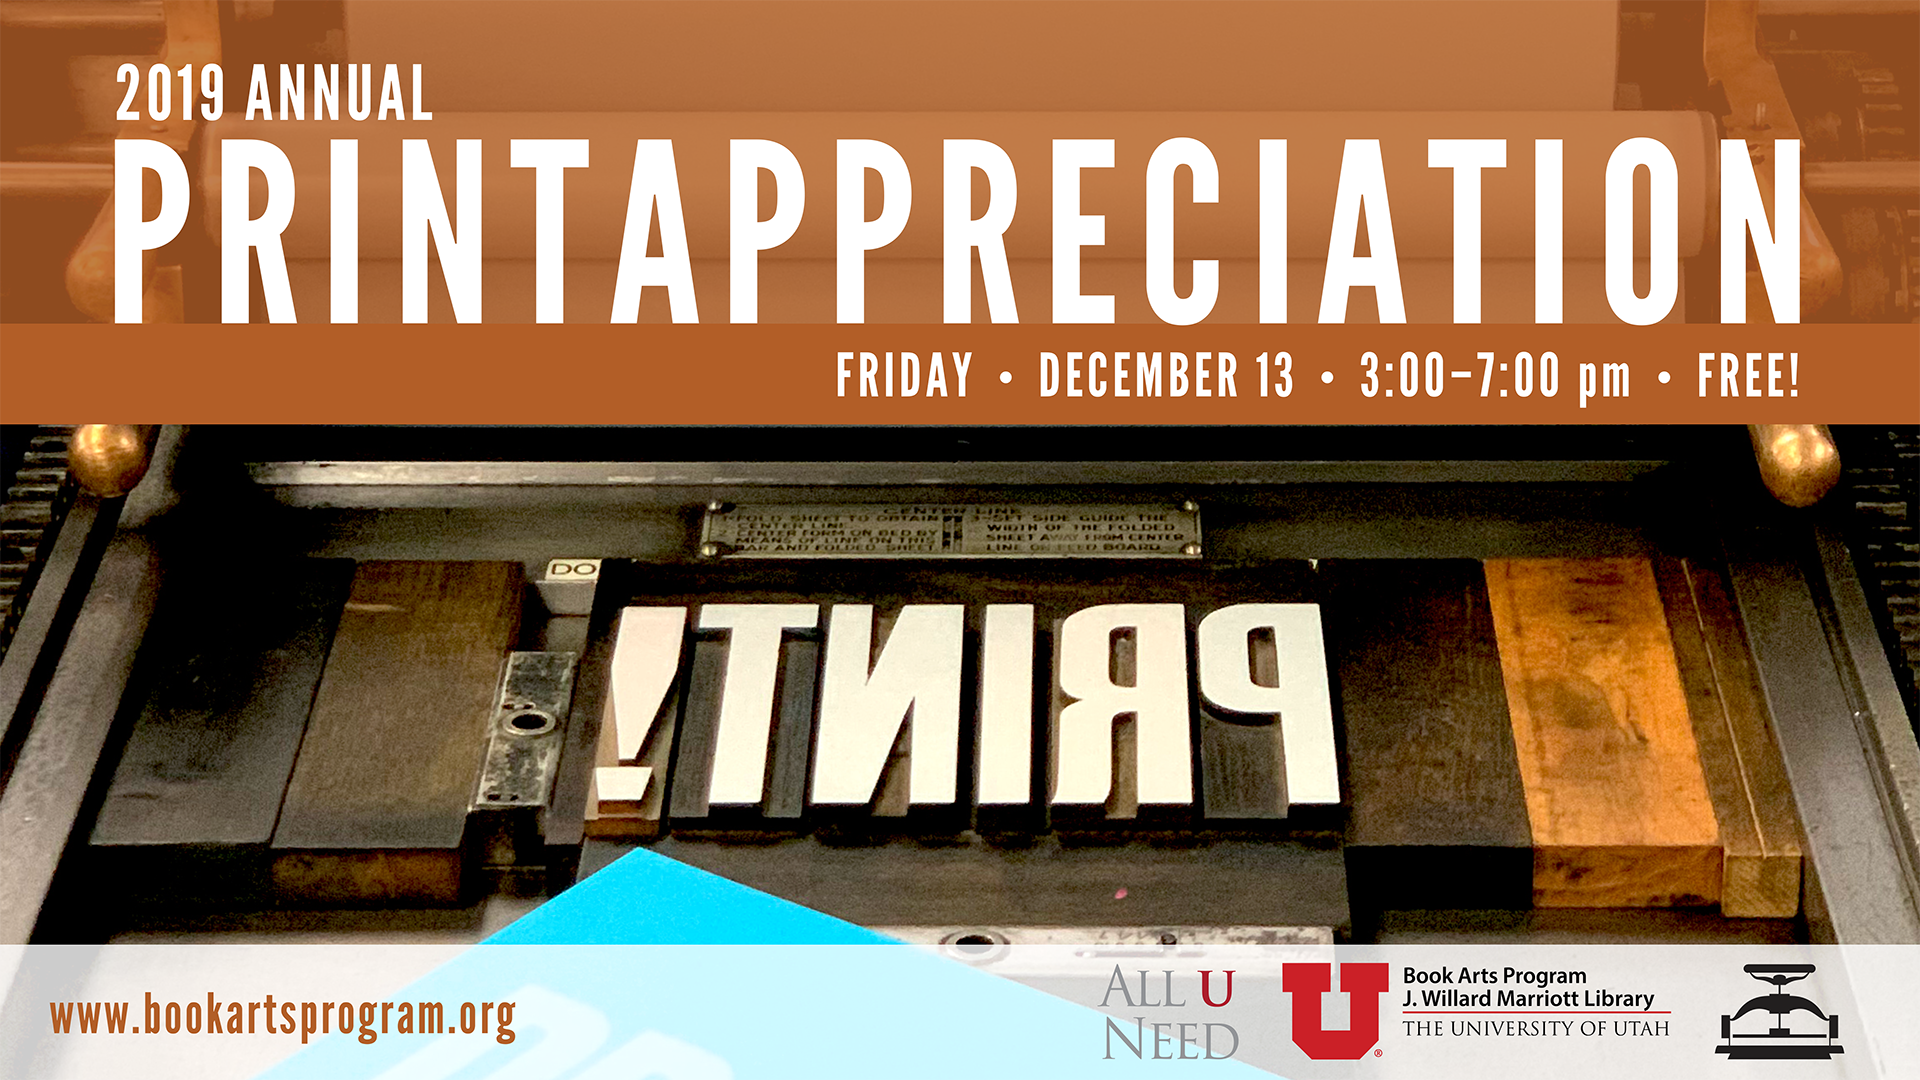 2019 print appreciation friday december 13 3 to 7 pm free book arts program